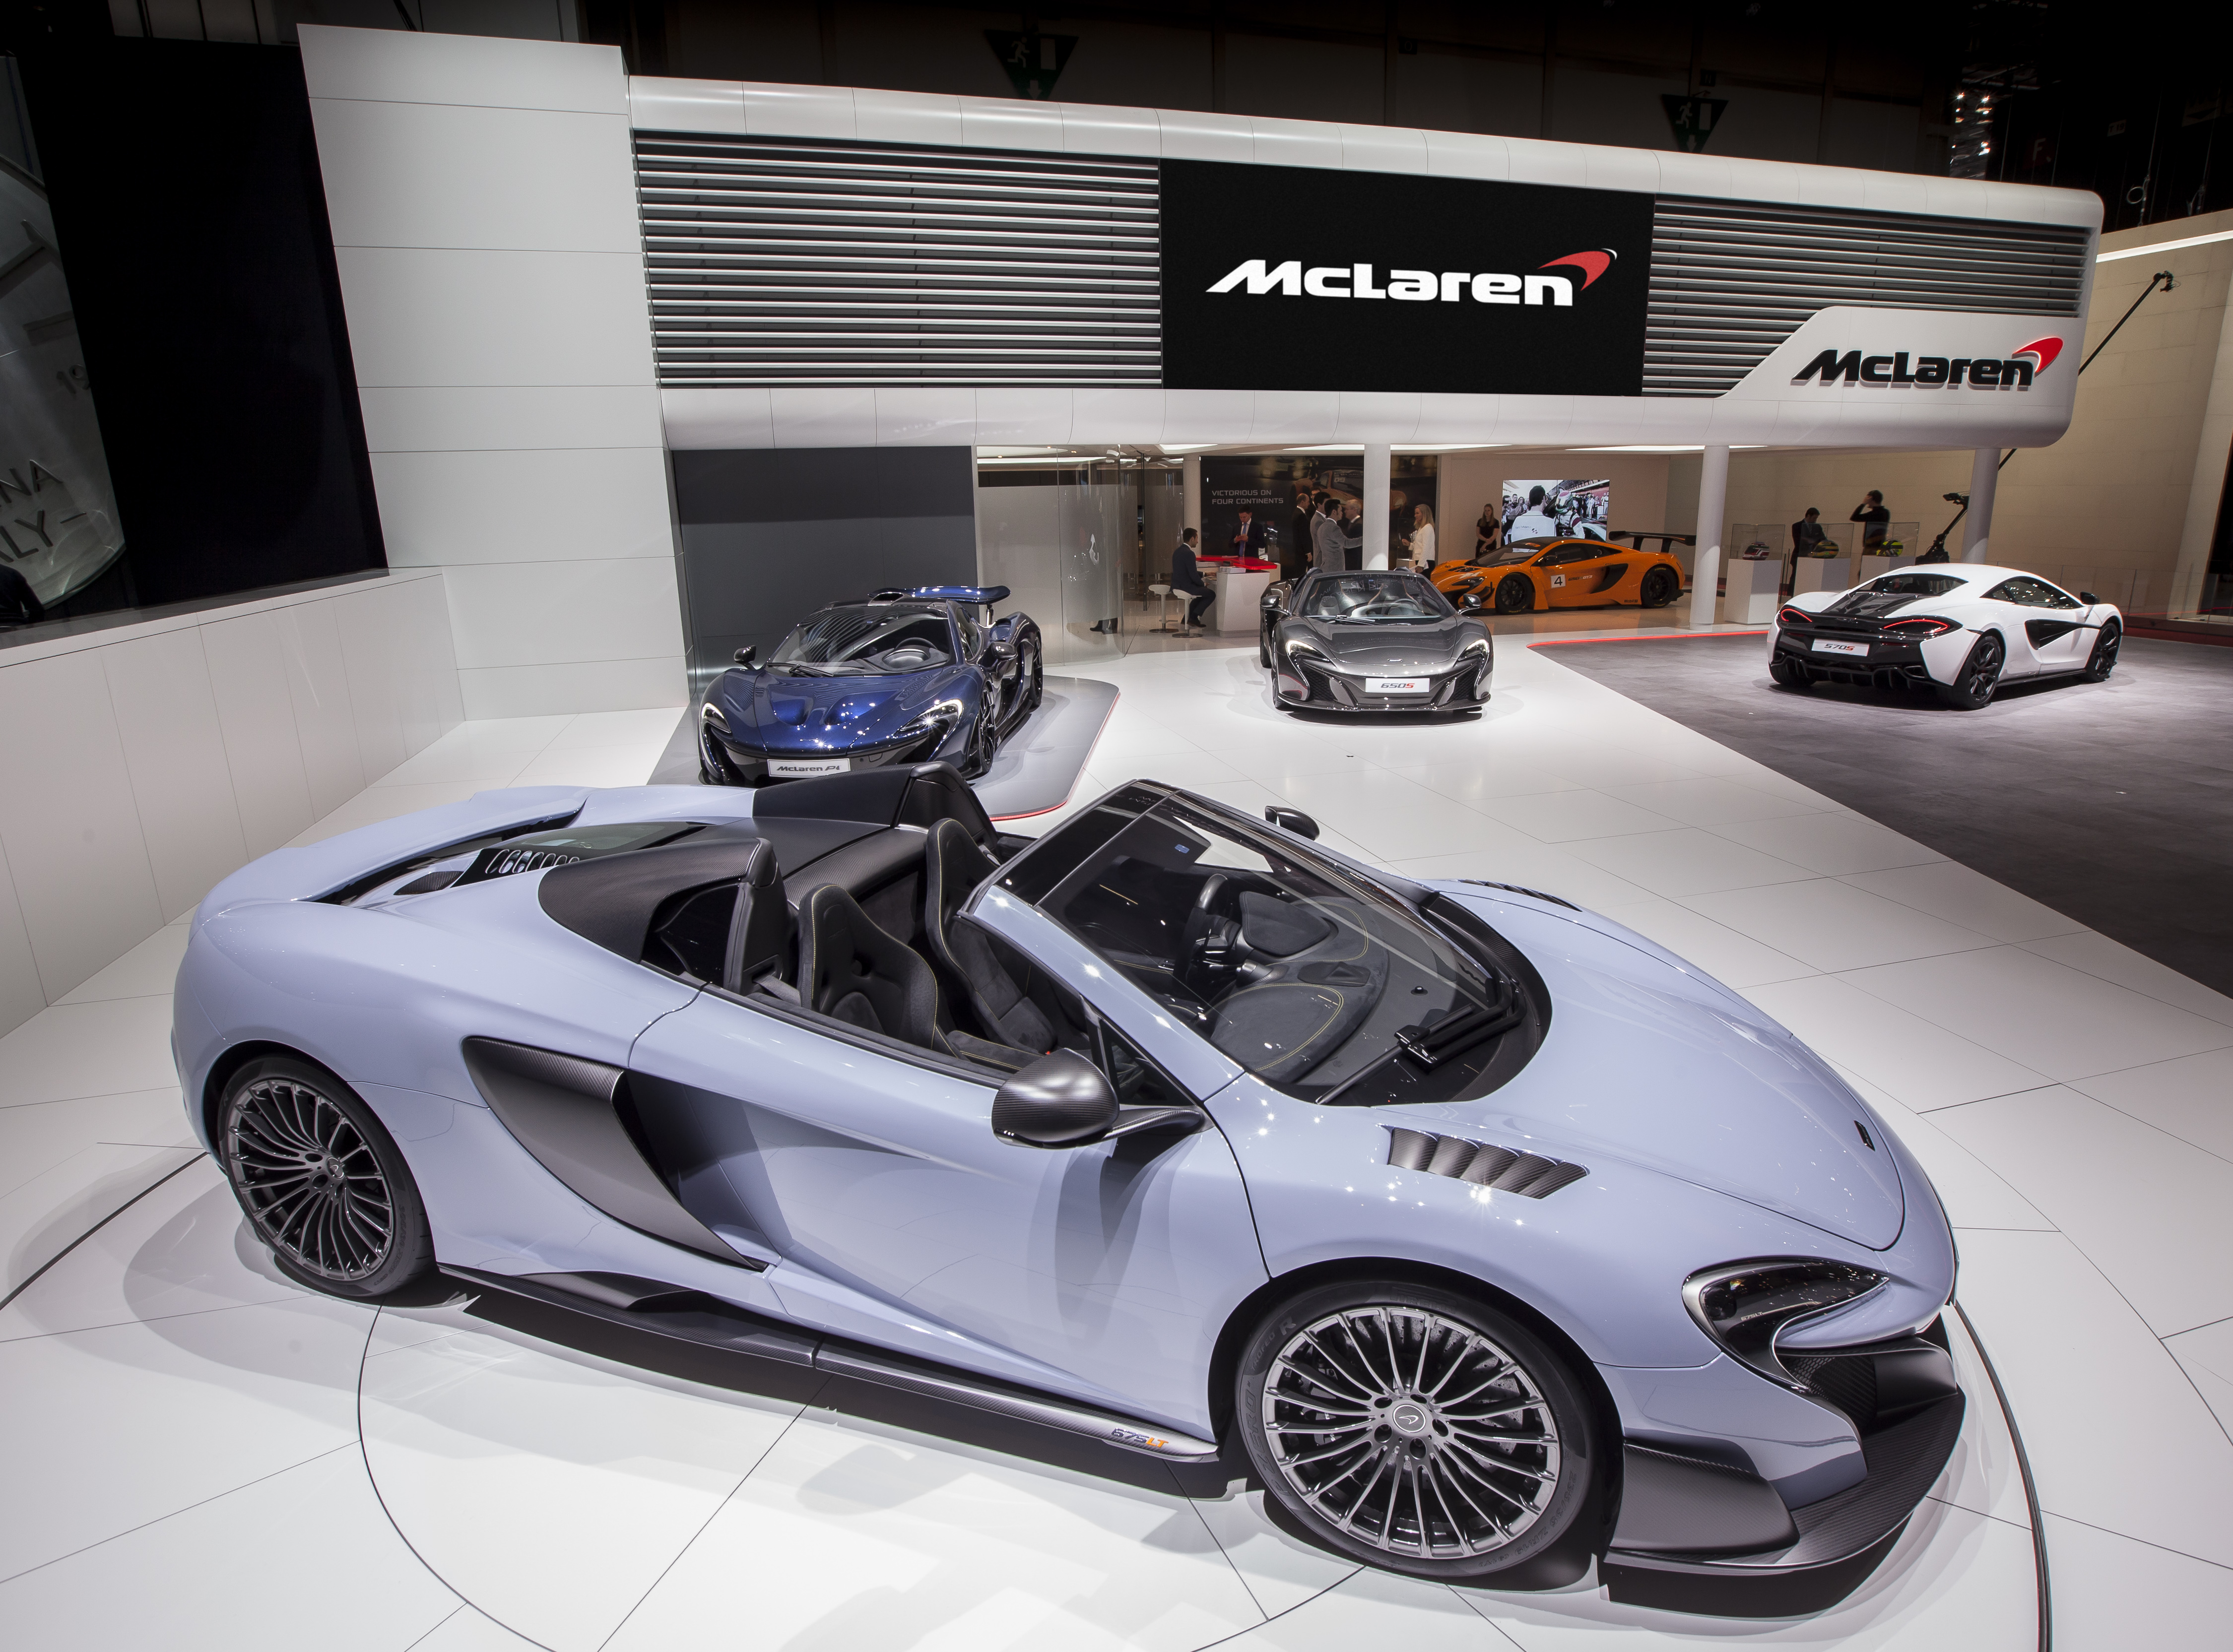 ©McLarenAutomotive www.mclarenautomotive.com dave.eden@mclaren.com www.media.mclarenautomotive.com www.facebook.com/mclarenautomotive